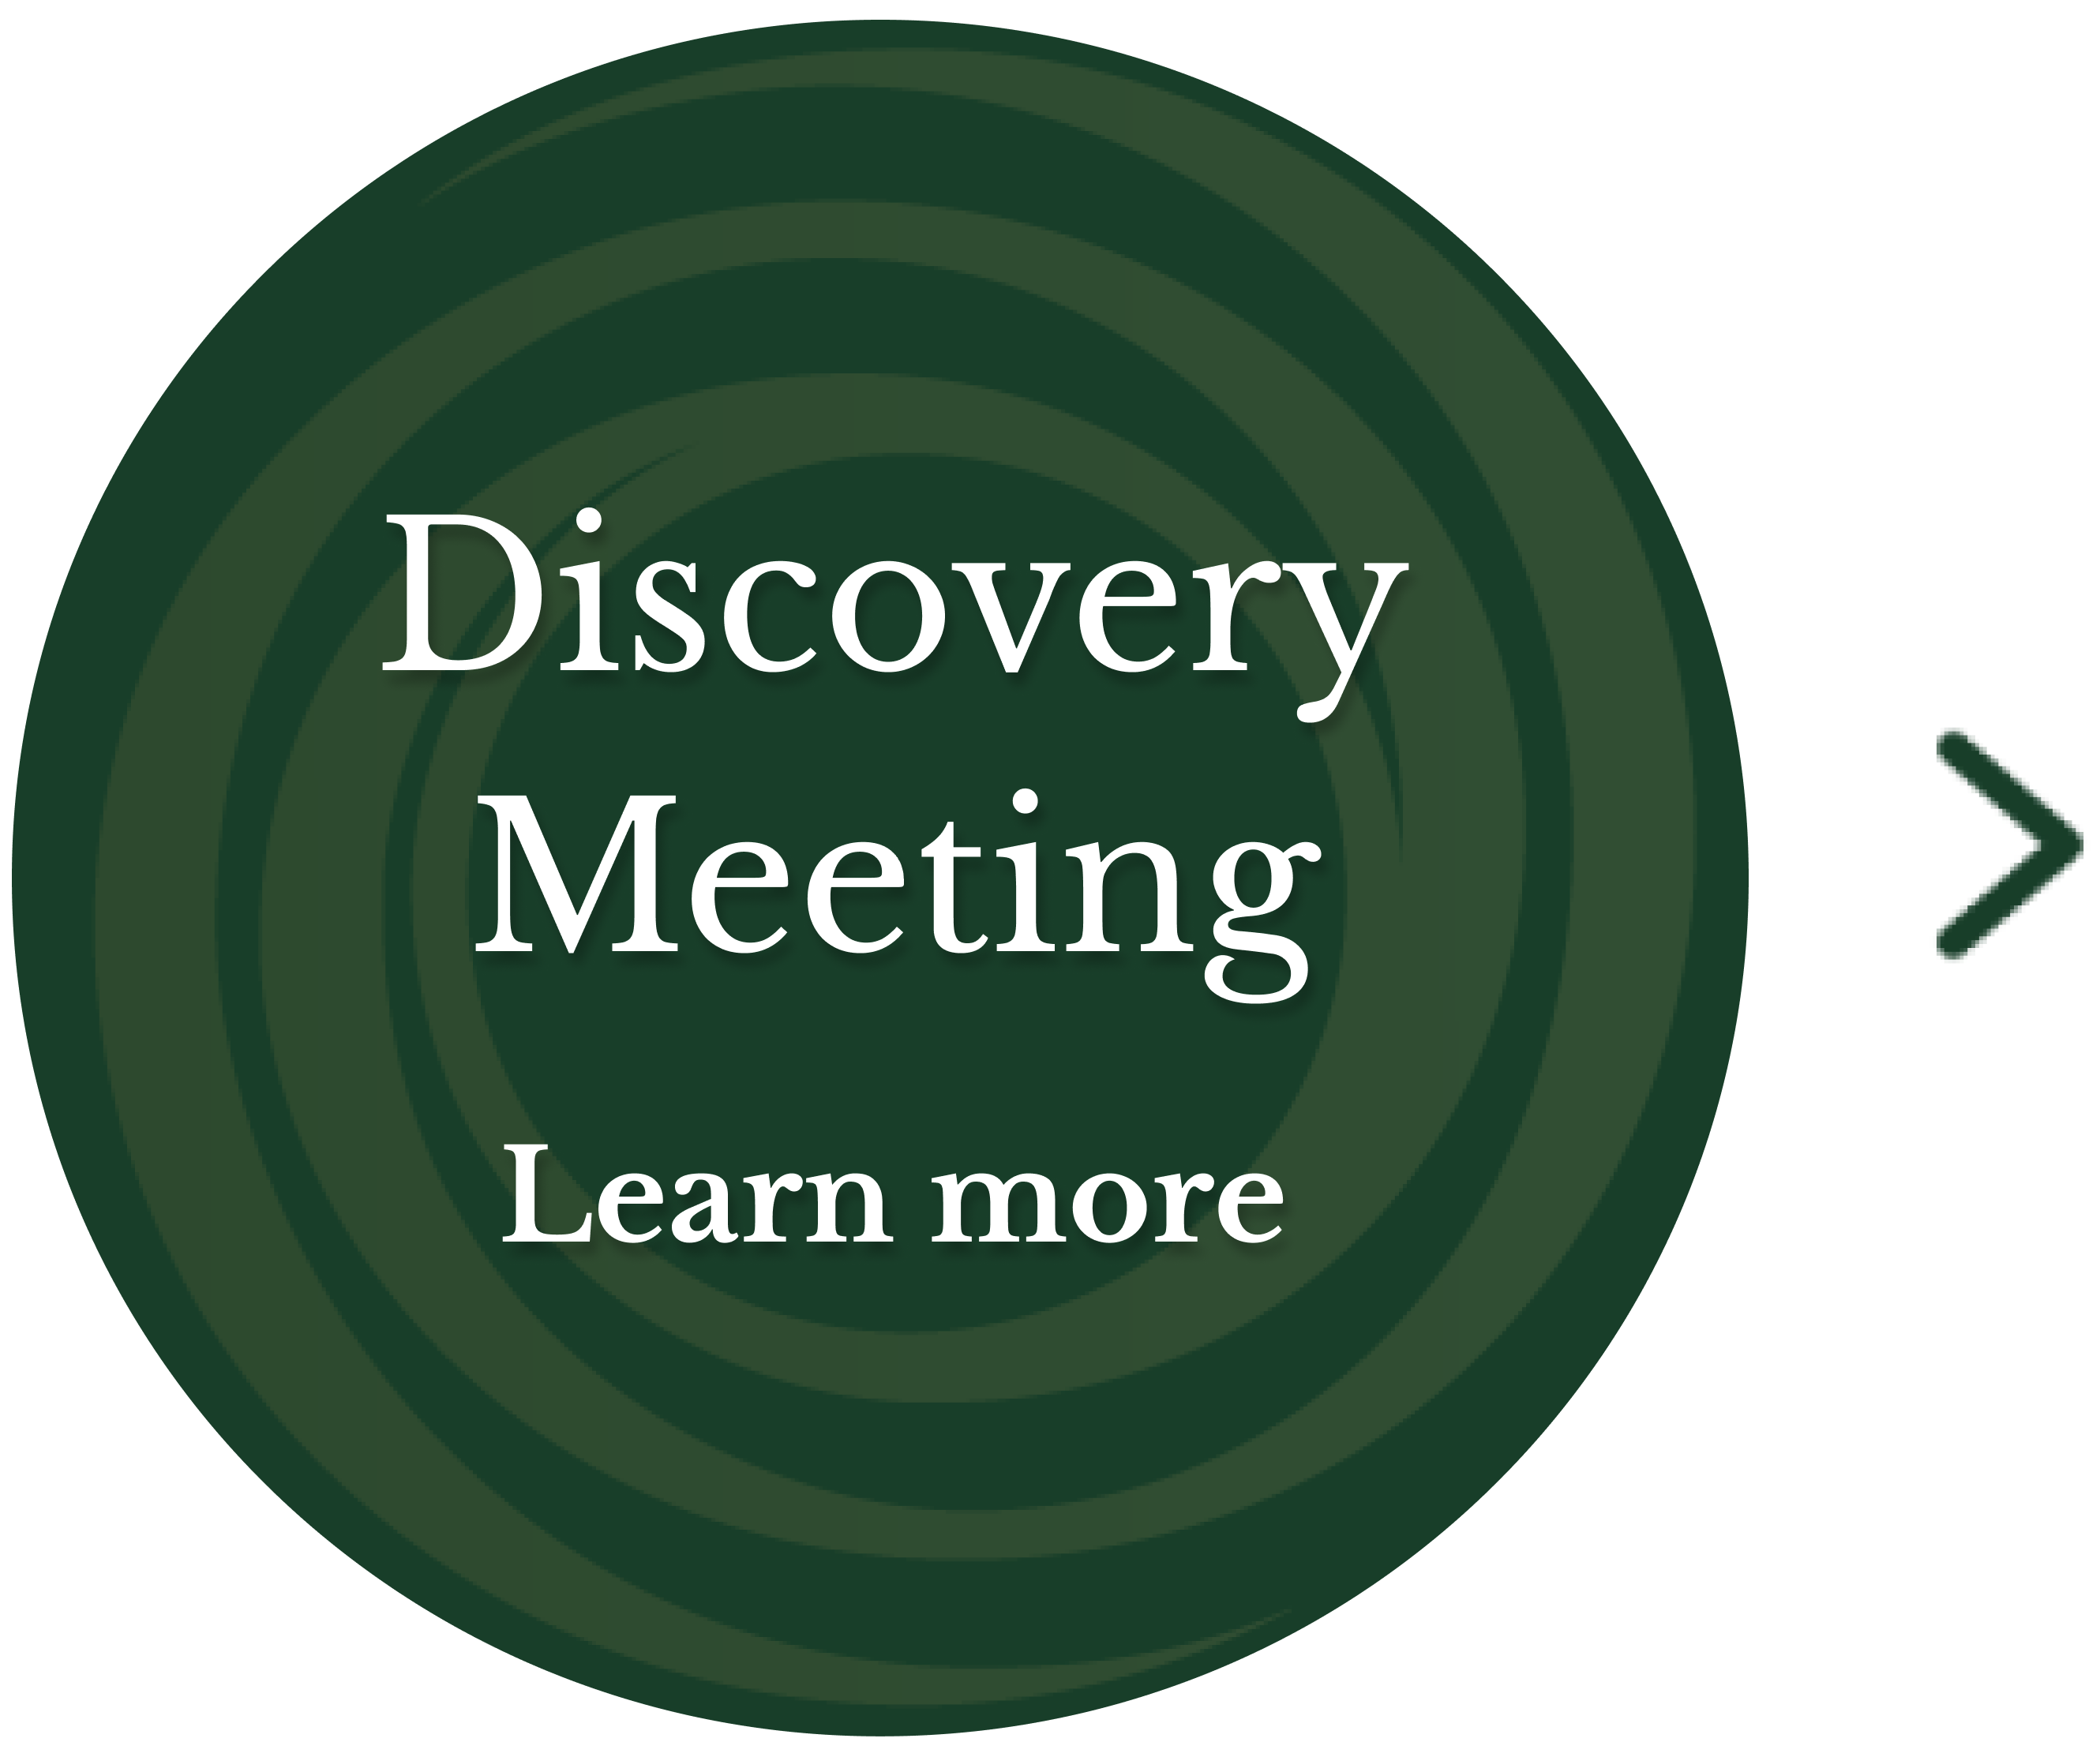 For Discovery Meeting details click here